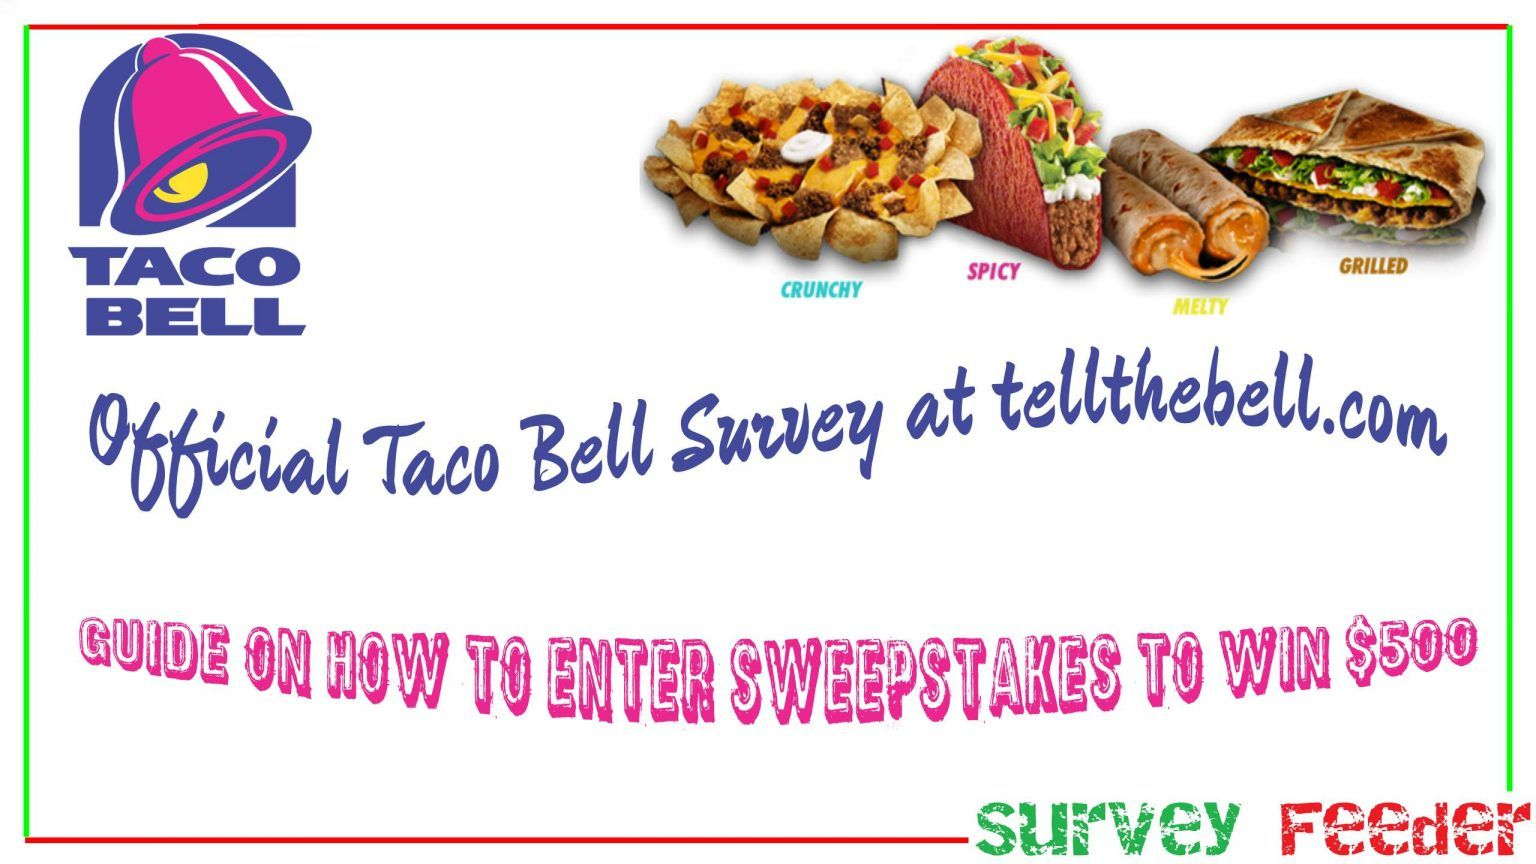 Taco Bell Survey Www Tellthebell Com Win 500 By Sweepstakes Free Tea Taco Bell Surveys